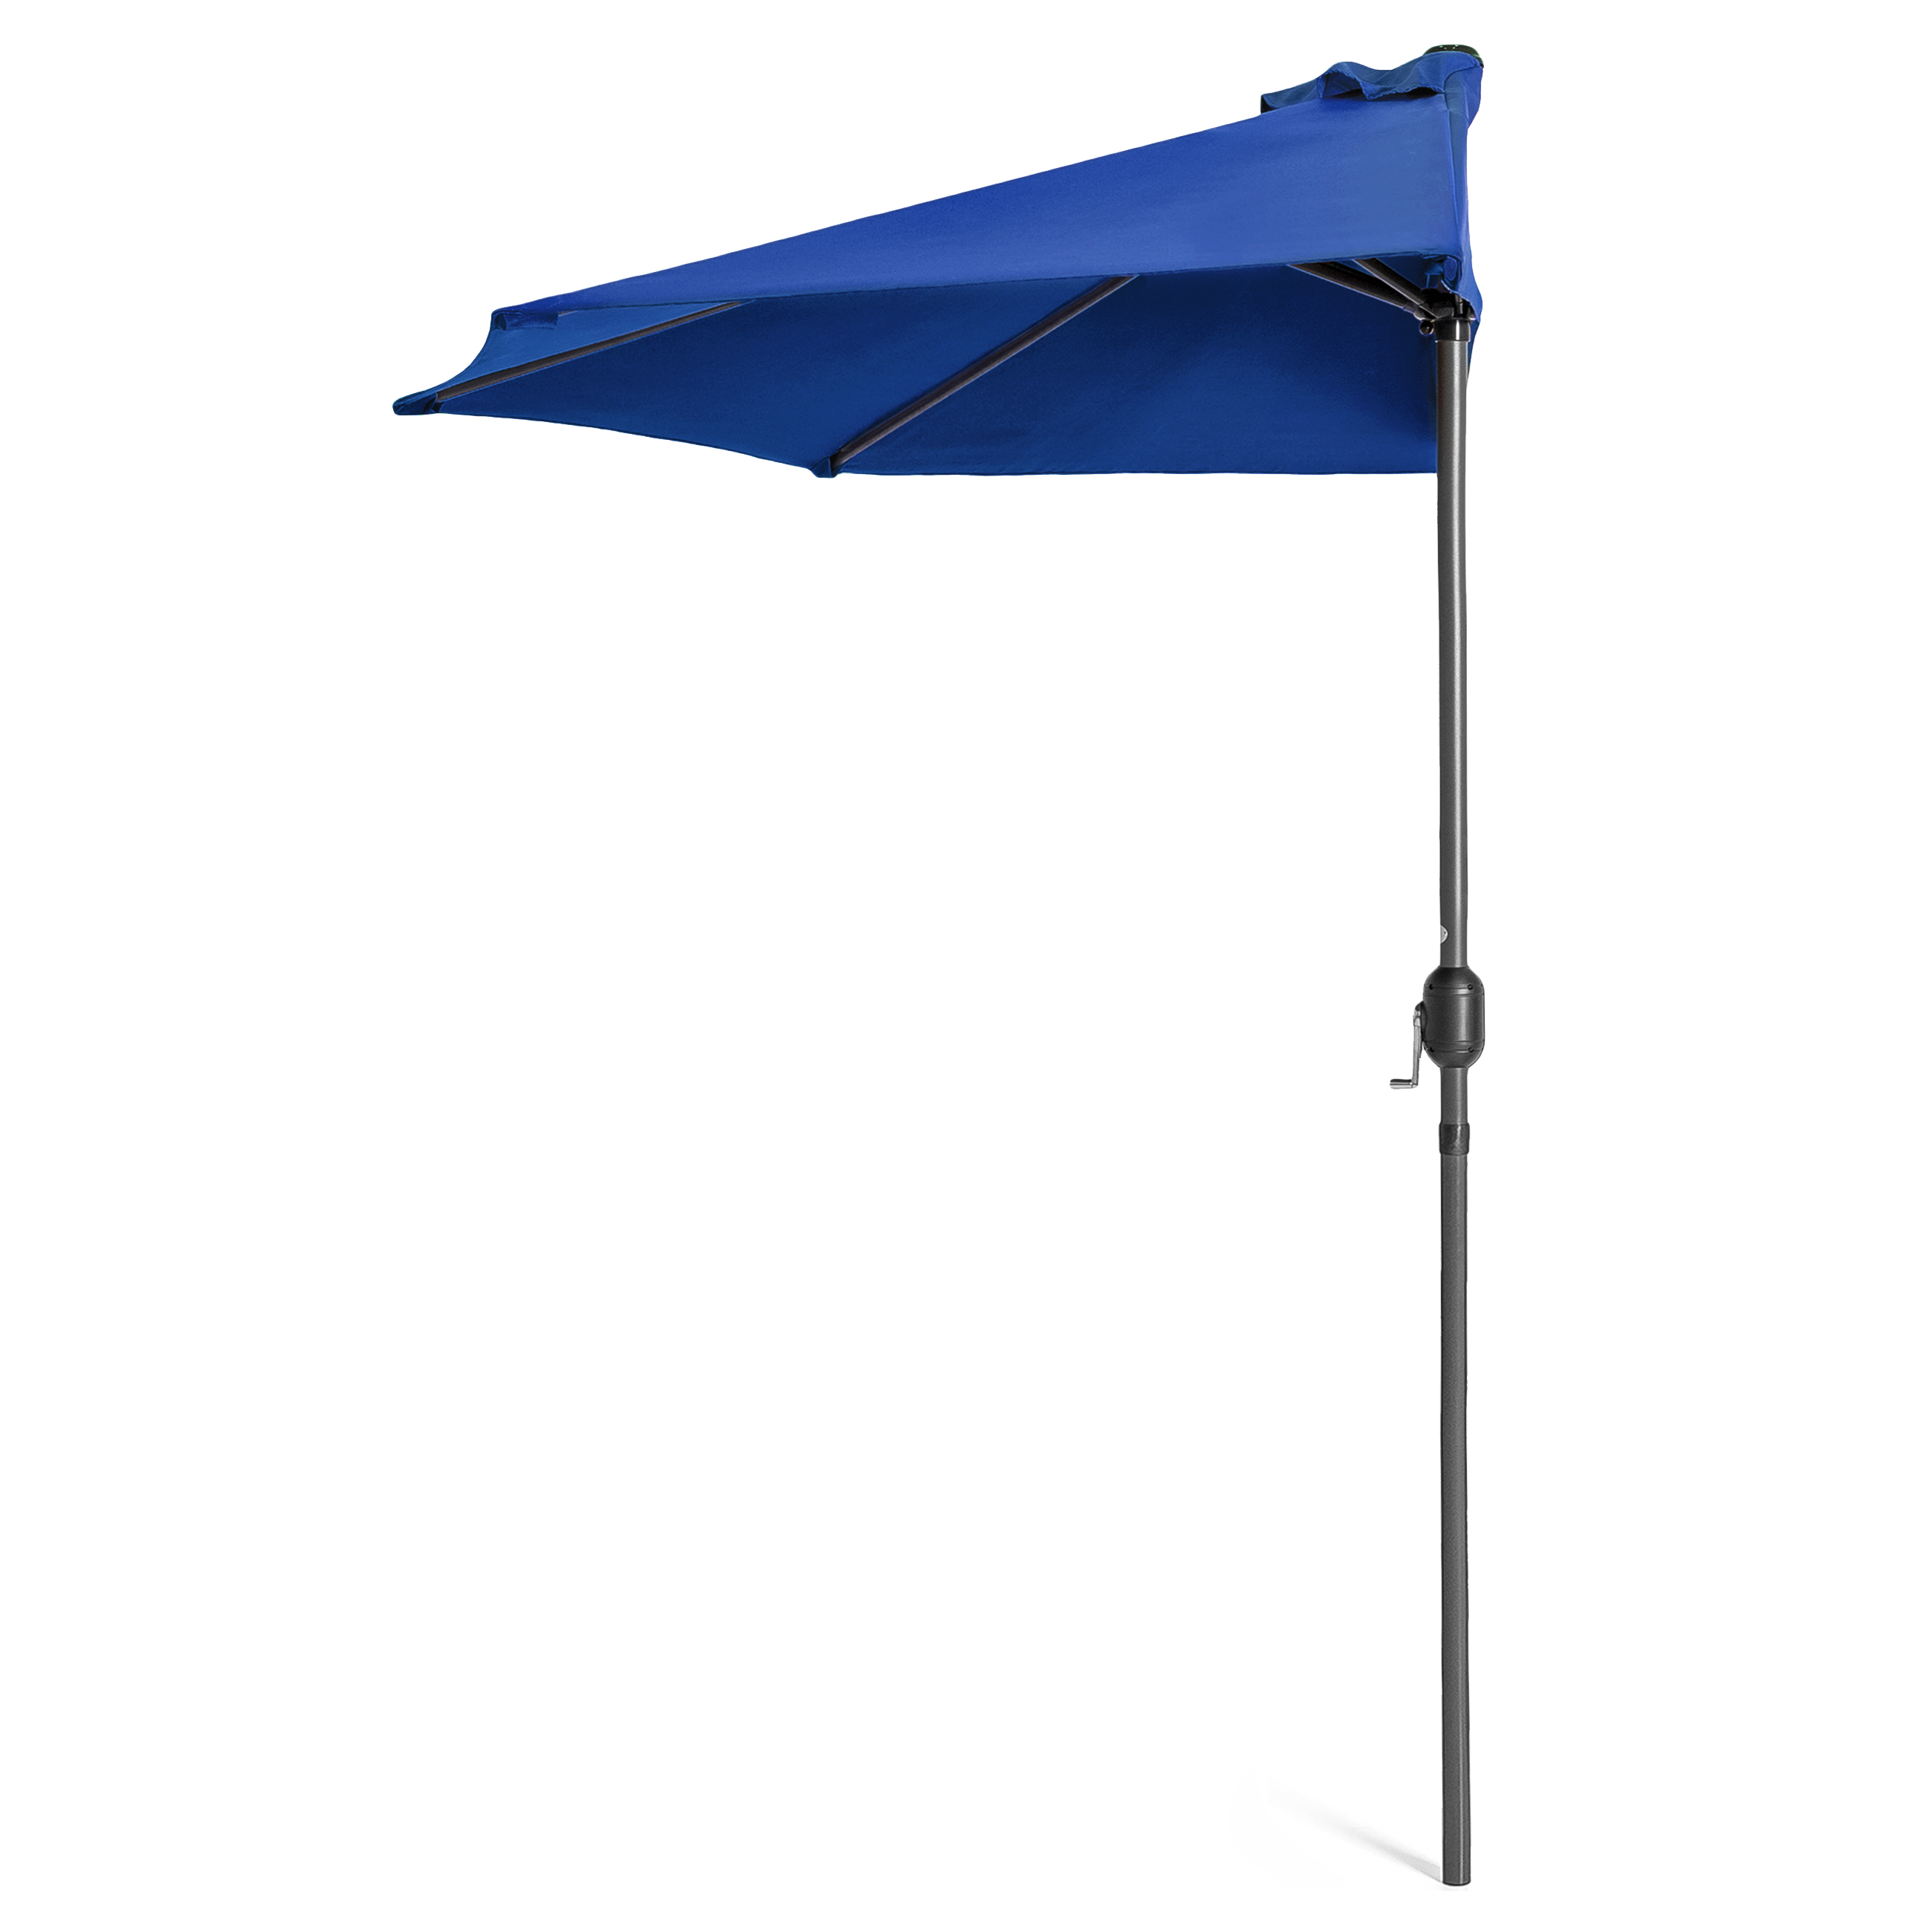 BCP-9ft-Half-Patio-Umbrella-w-Crank-Steel-Frame-UV-amp-Water-Resistant-Fabric thumbnail 8